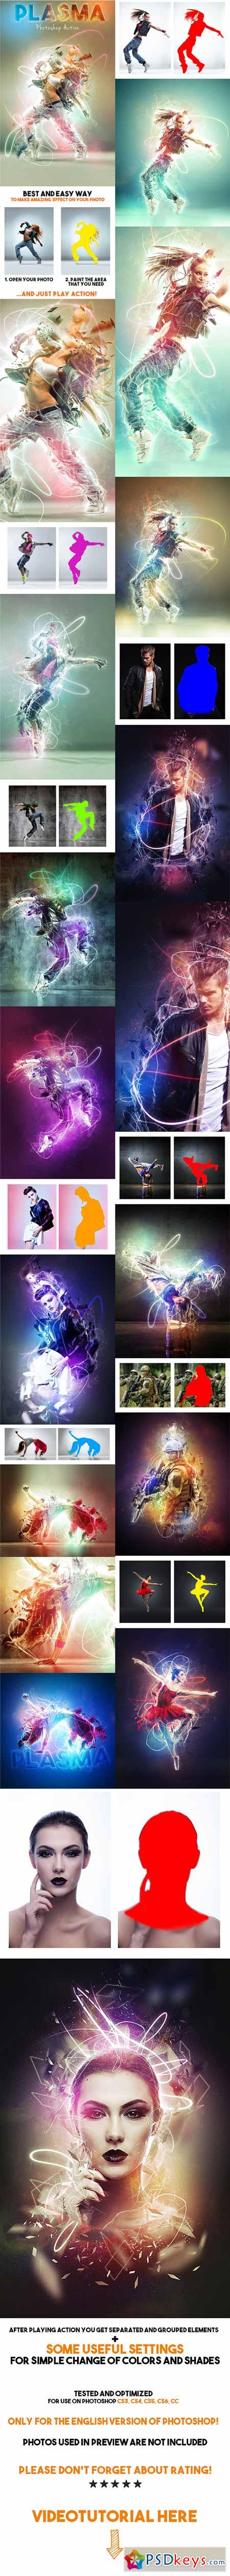 Plasma Photoshop Action 12814548